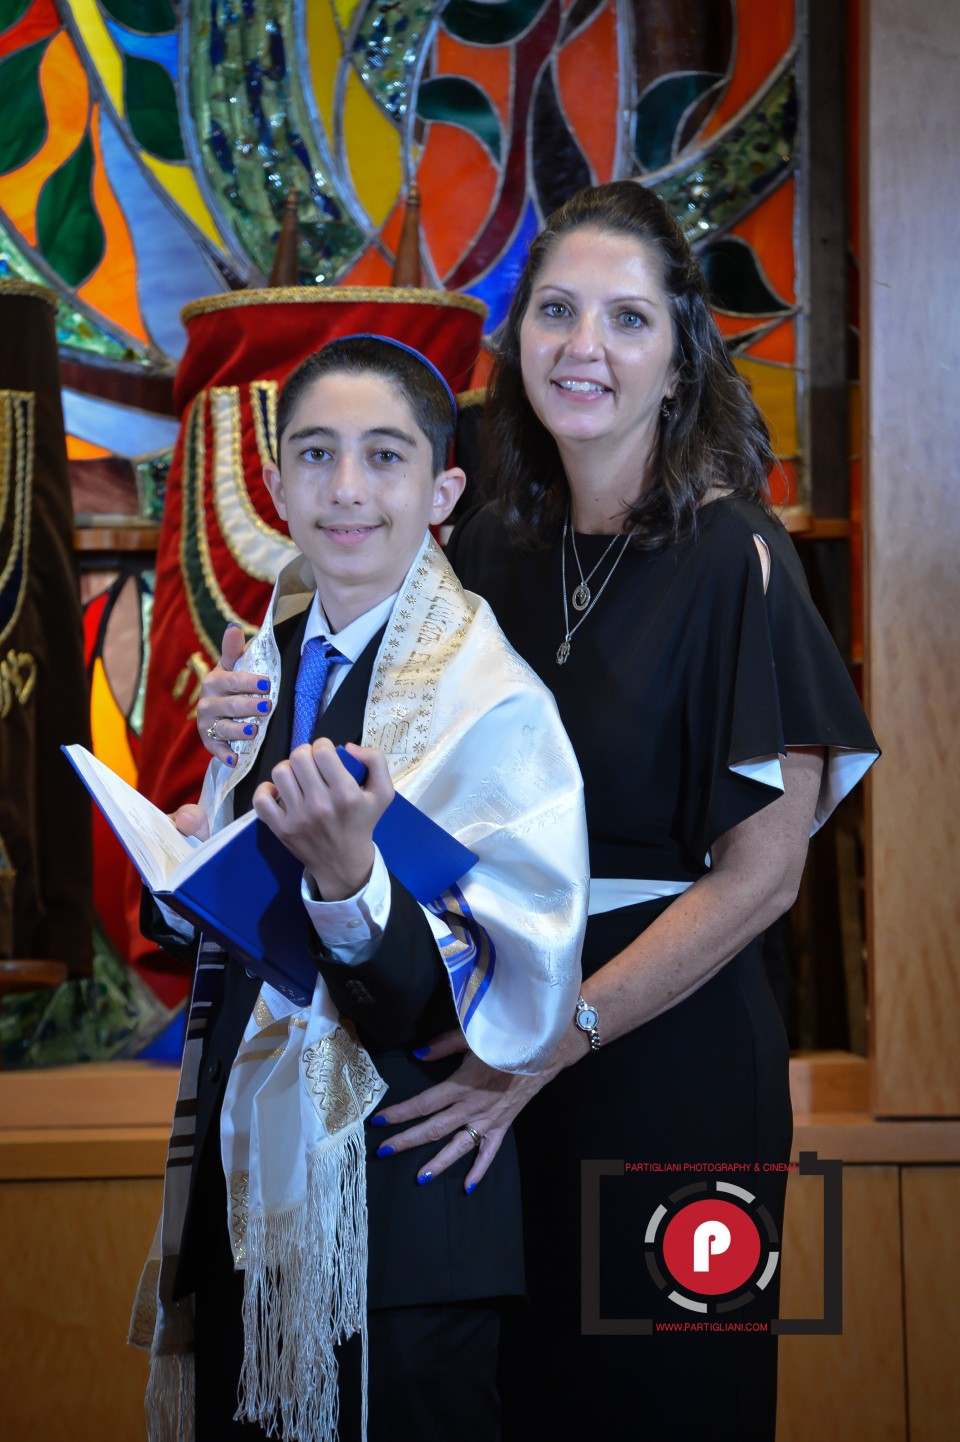 TEMPLE BETH EMET, PARTIGLIANI PHOTOGRAPHY, JEREMY'S BAR MITZVAH-23